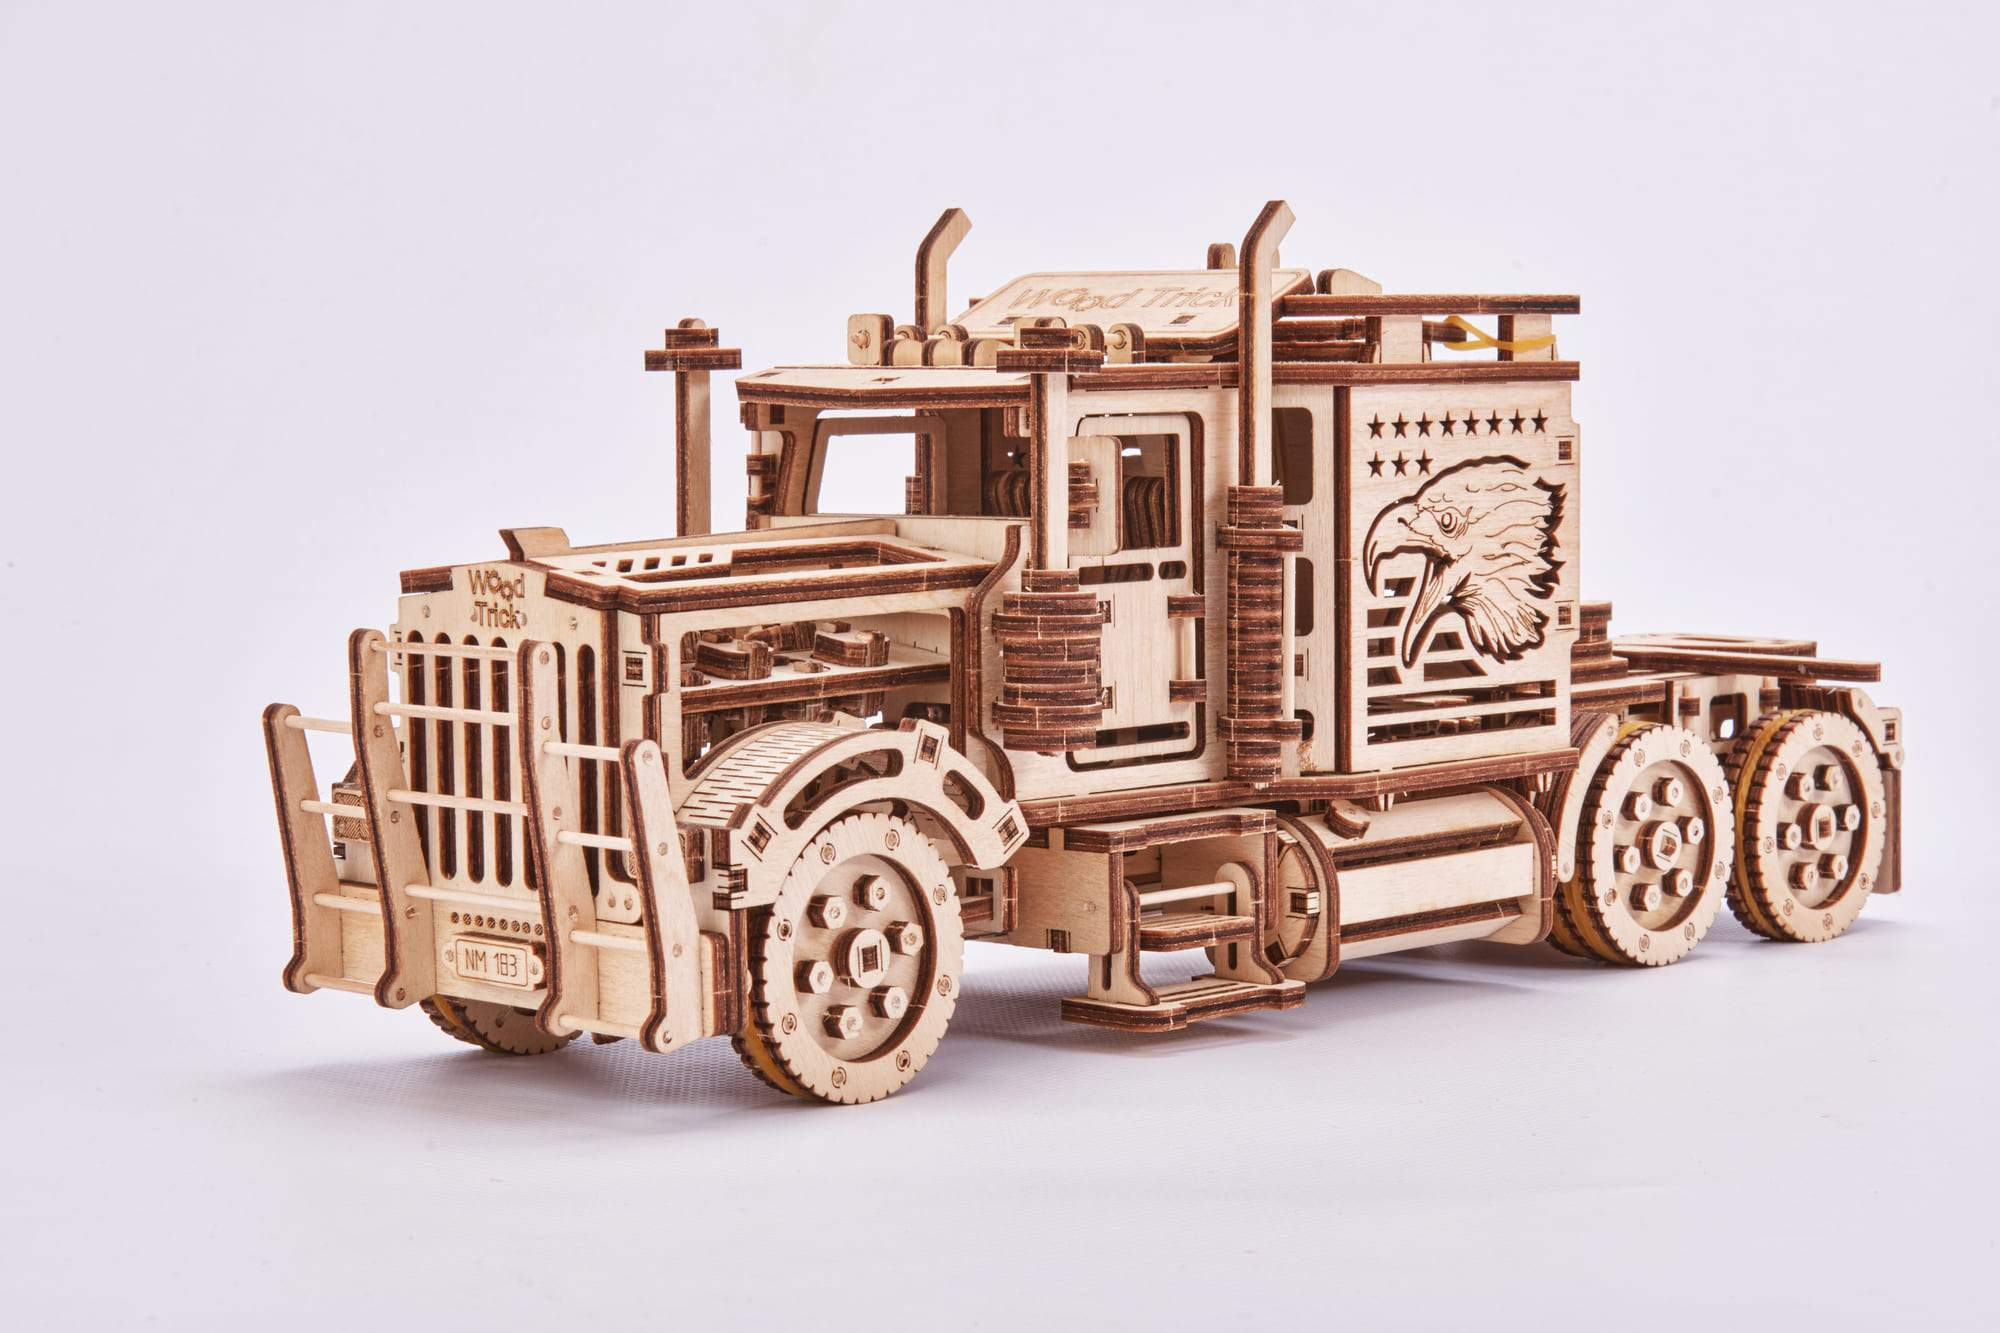 Big Rig Wooden 3D Puzzle - Walking Pants Curiosities